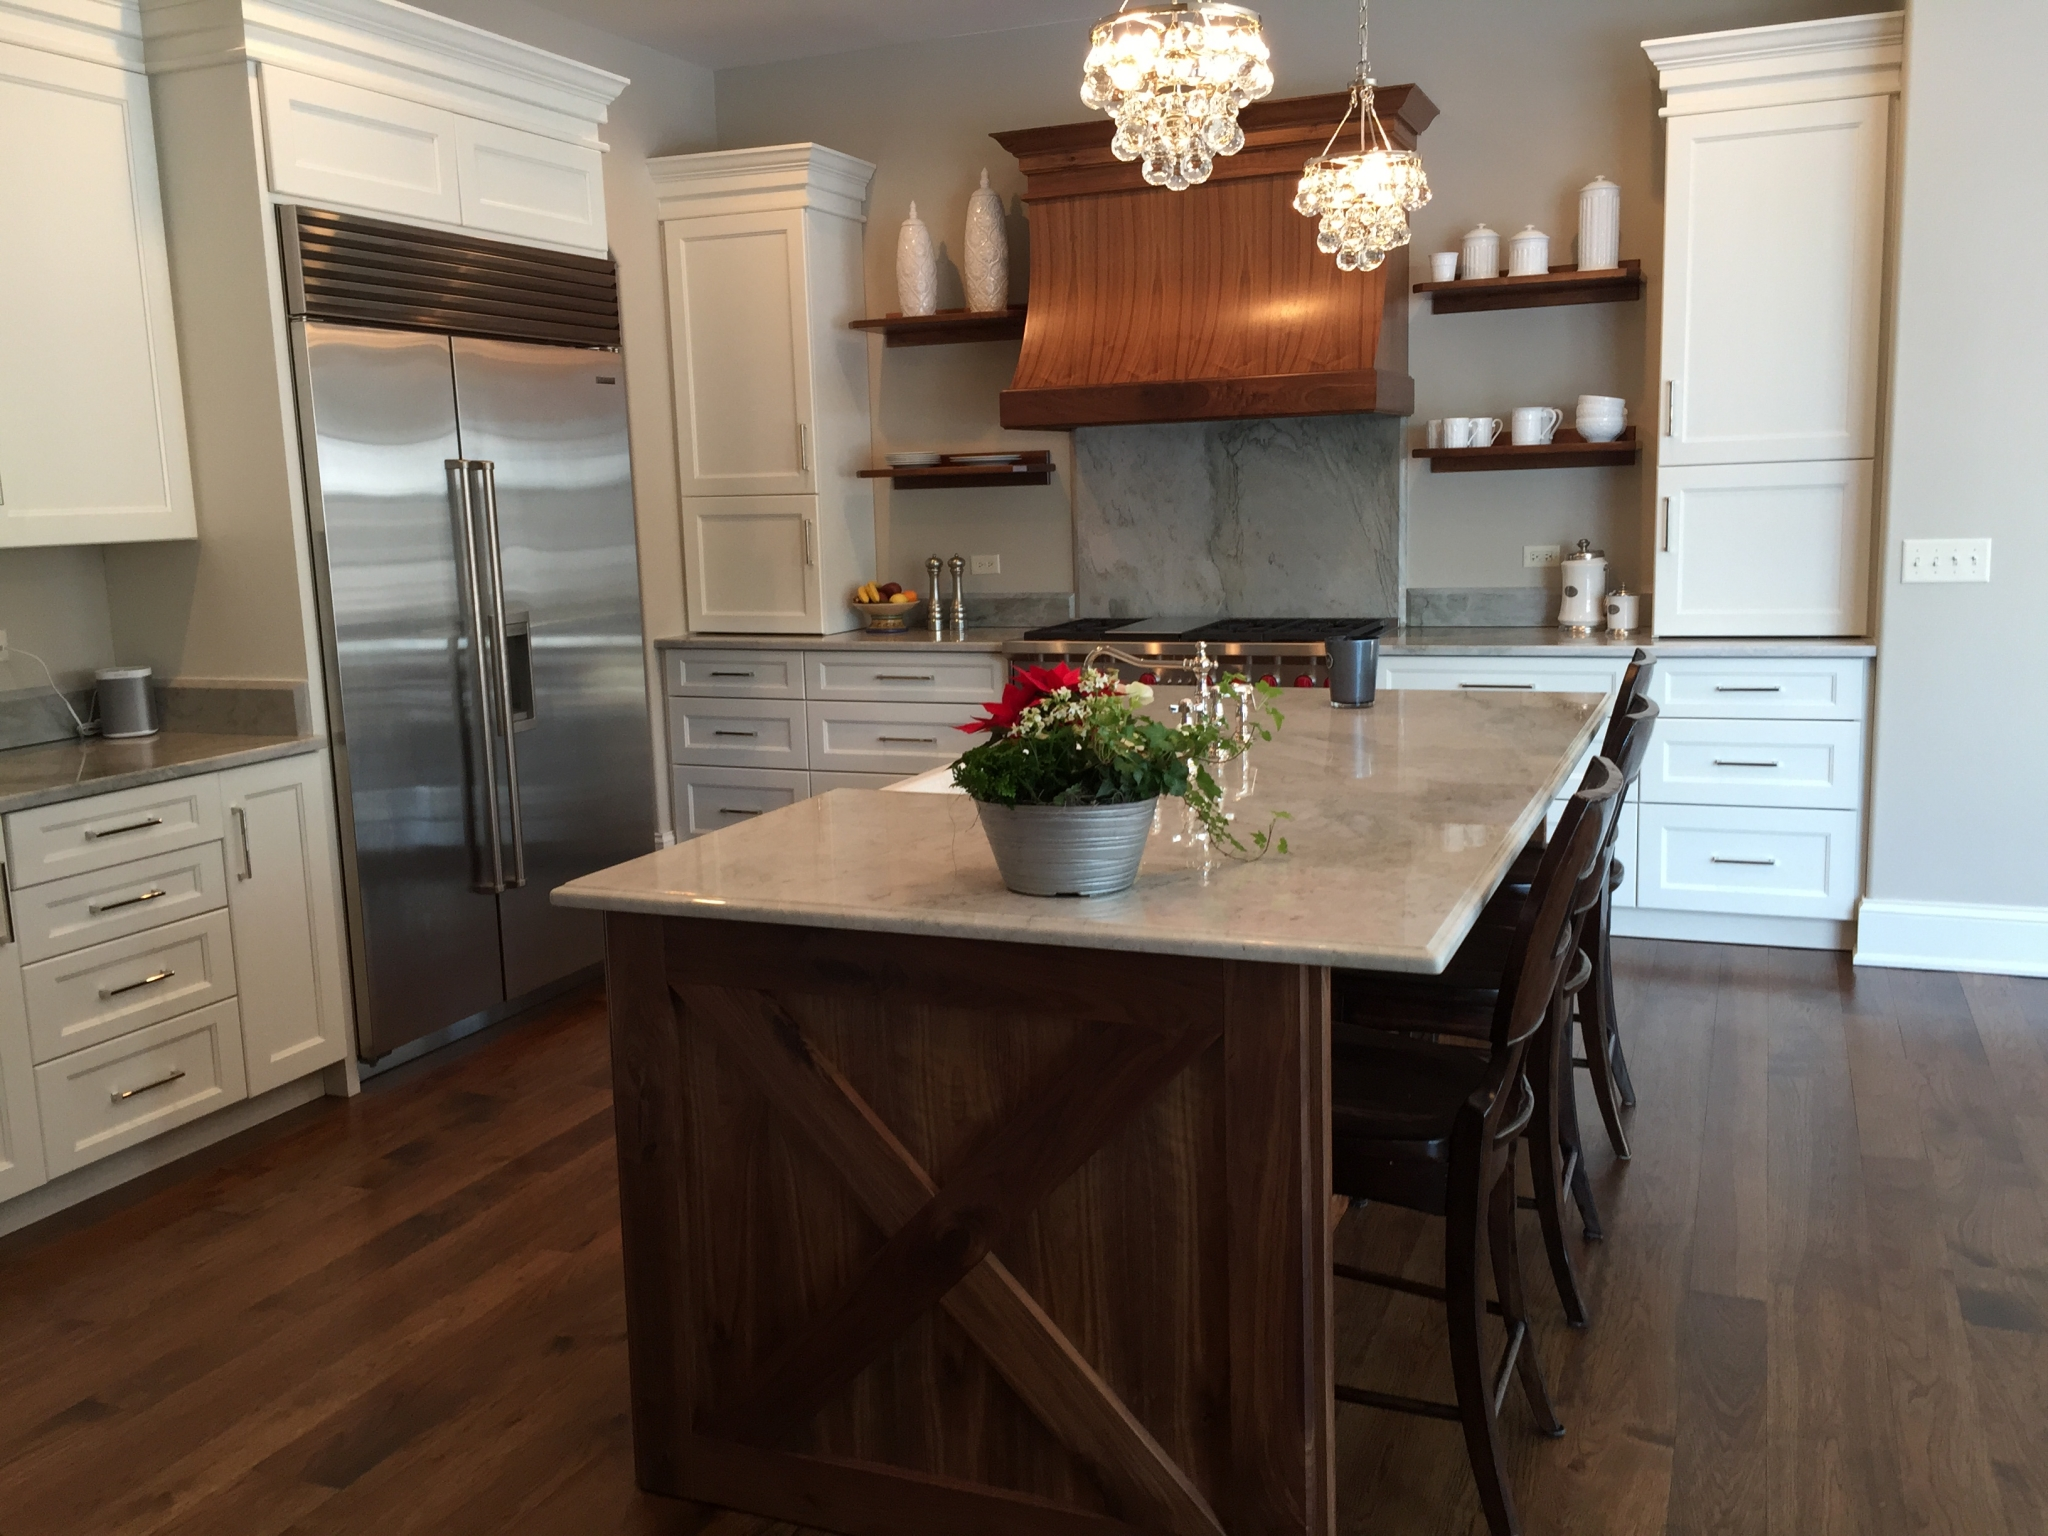 Cabinets Downers Grove  Residential and Commercial Cabinet Maker Serving Downers Grove IL 60515 60516.